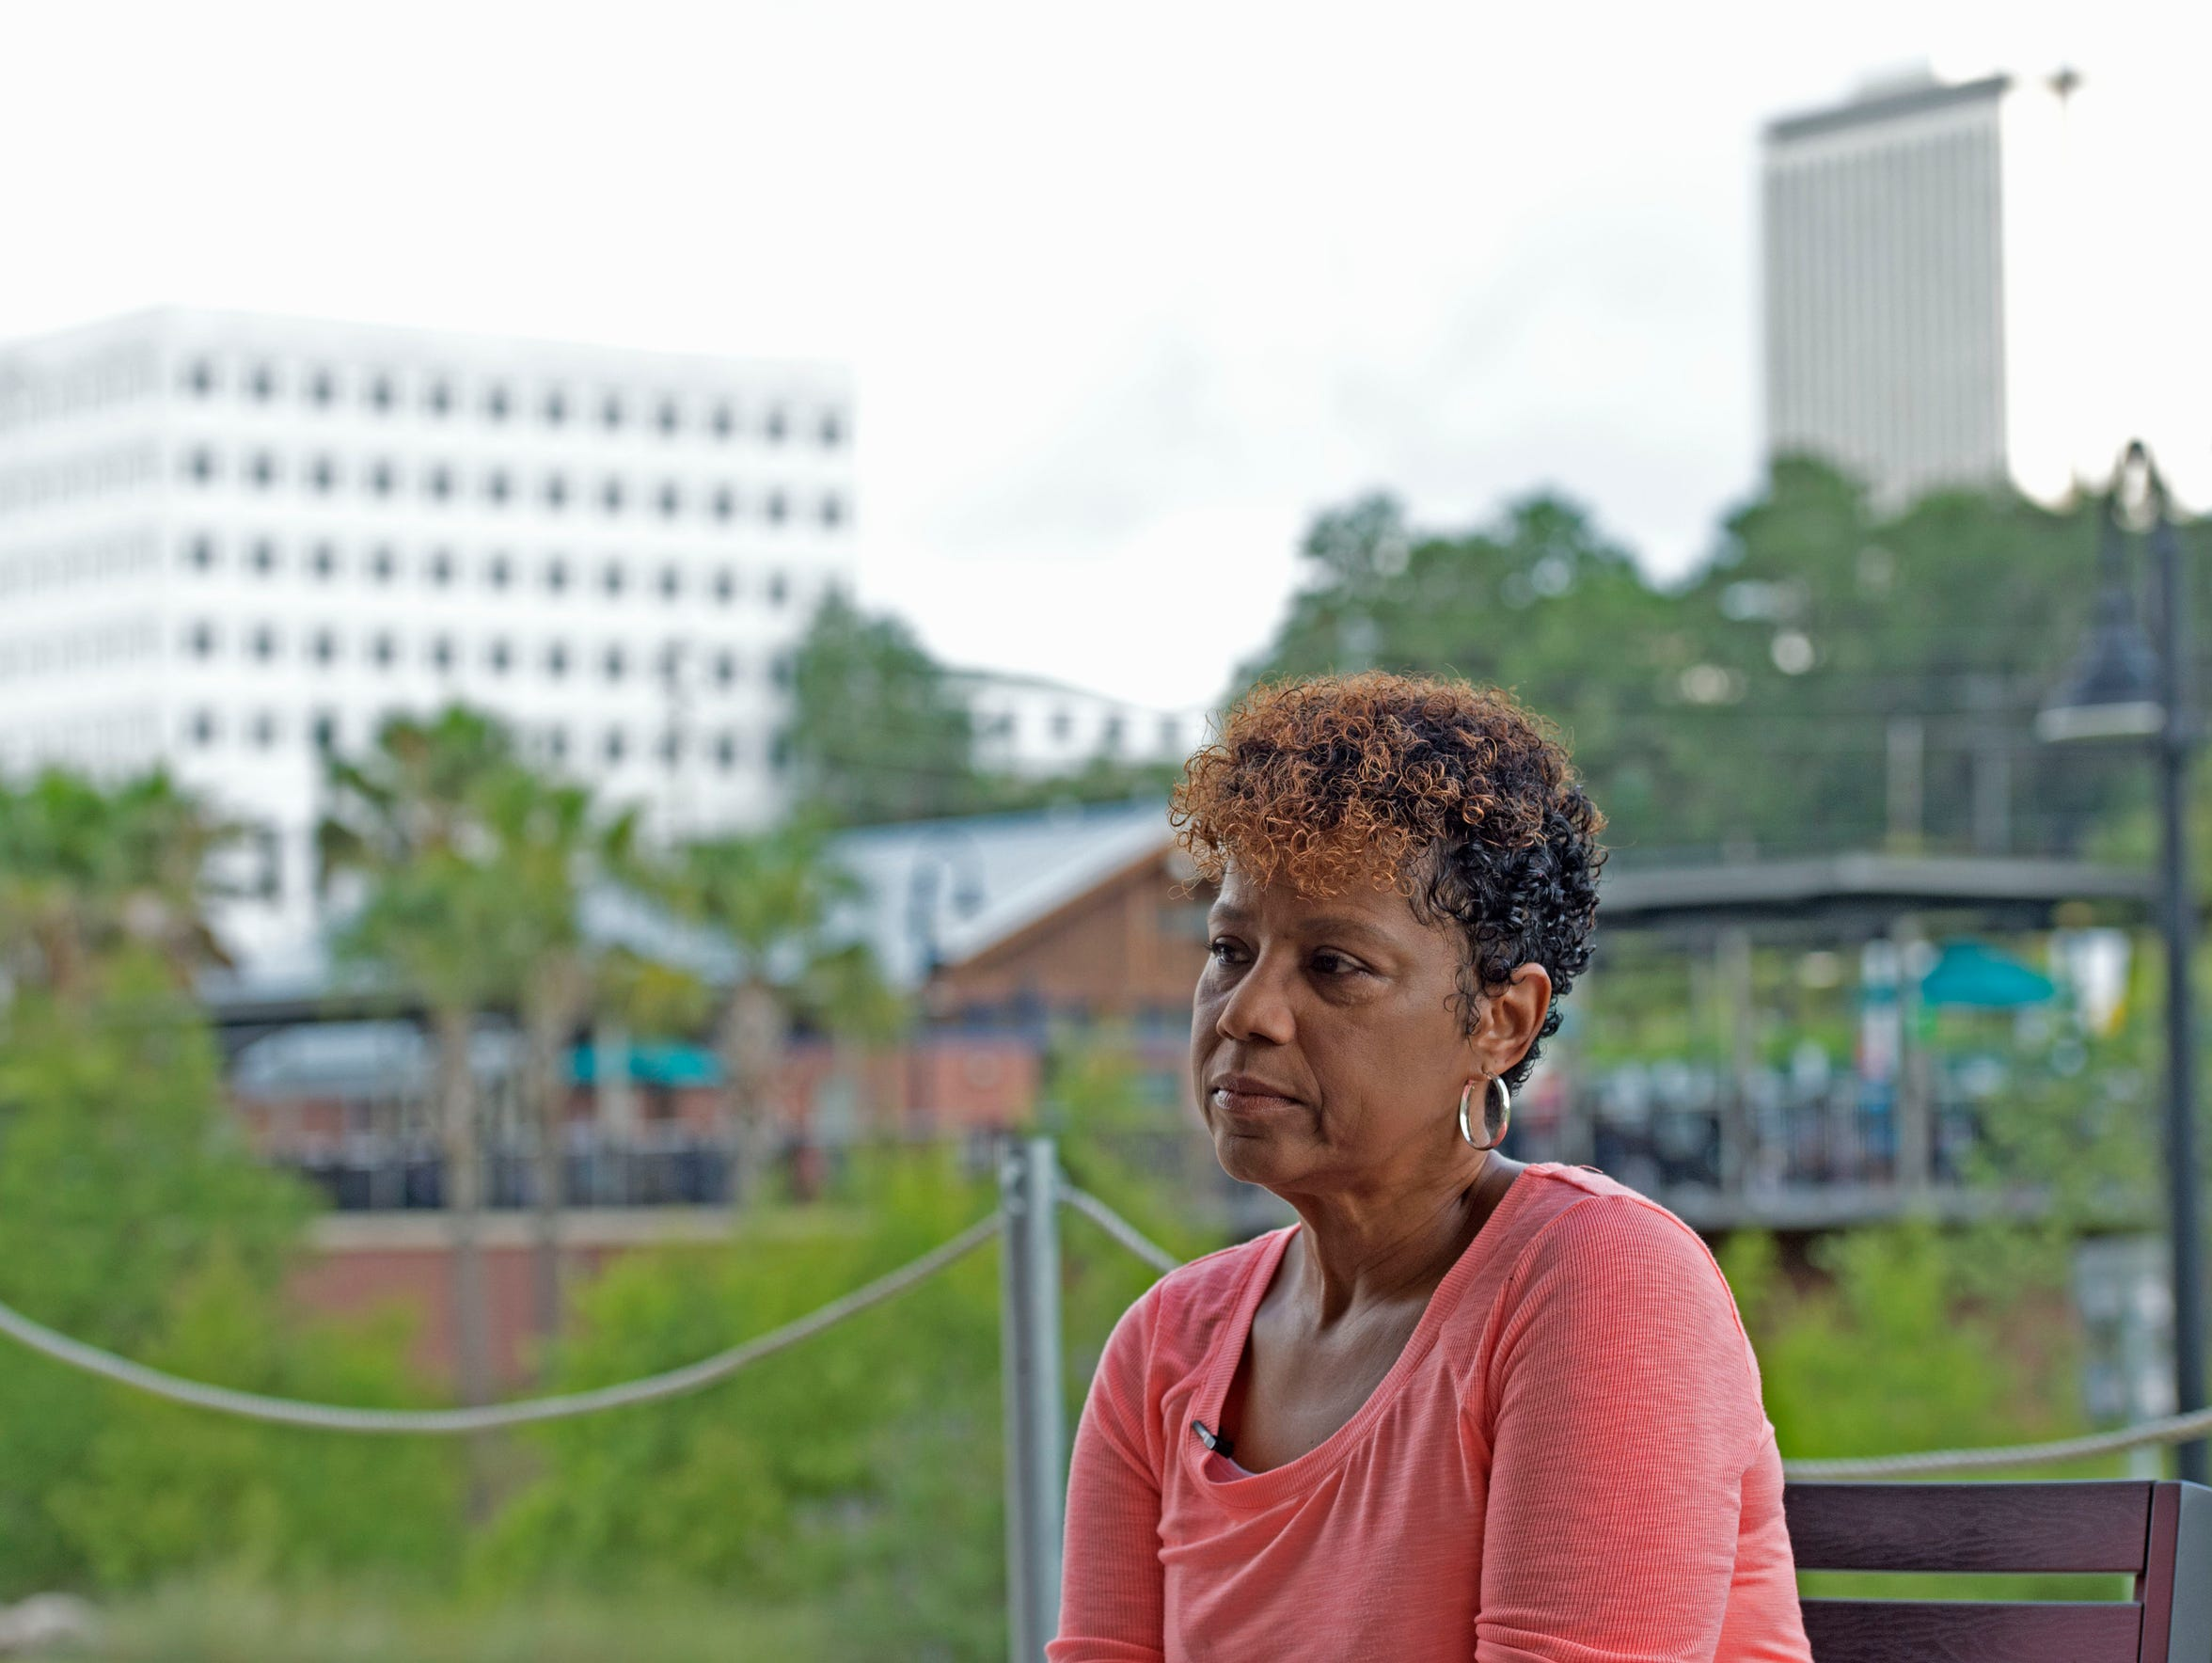 Since retiring in 2016, Marshelle Moreland, 56, of